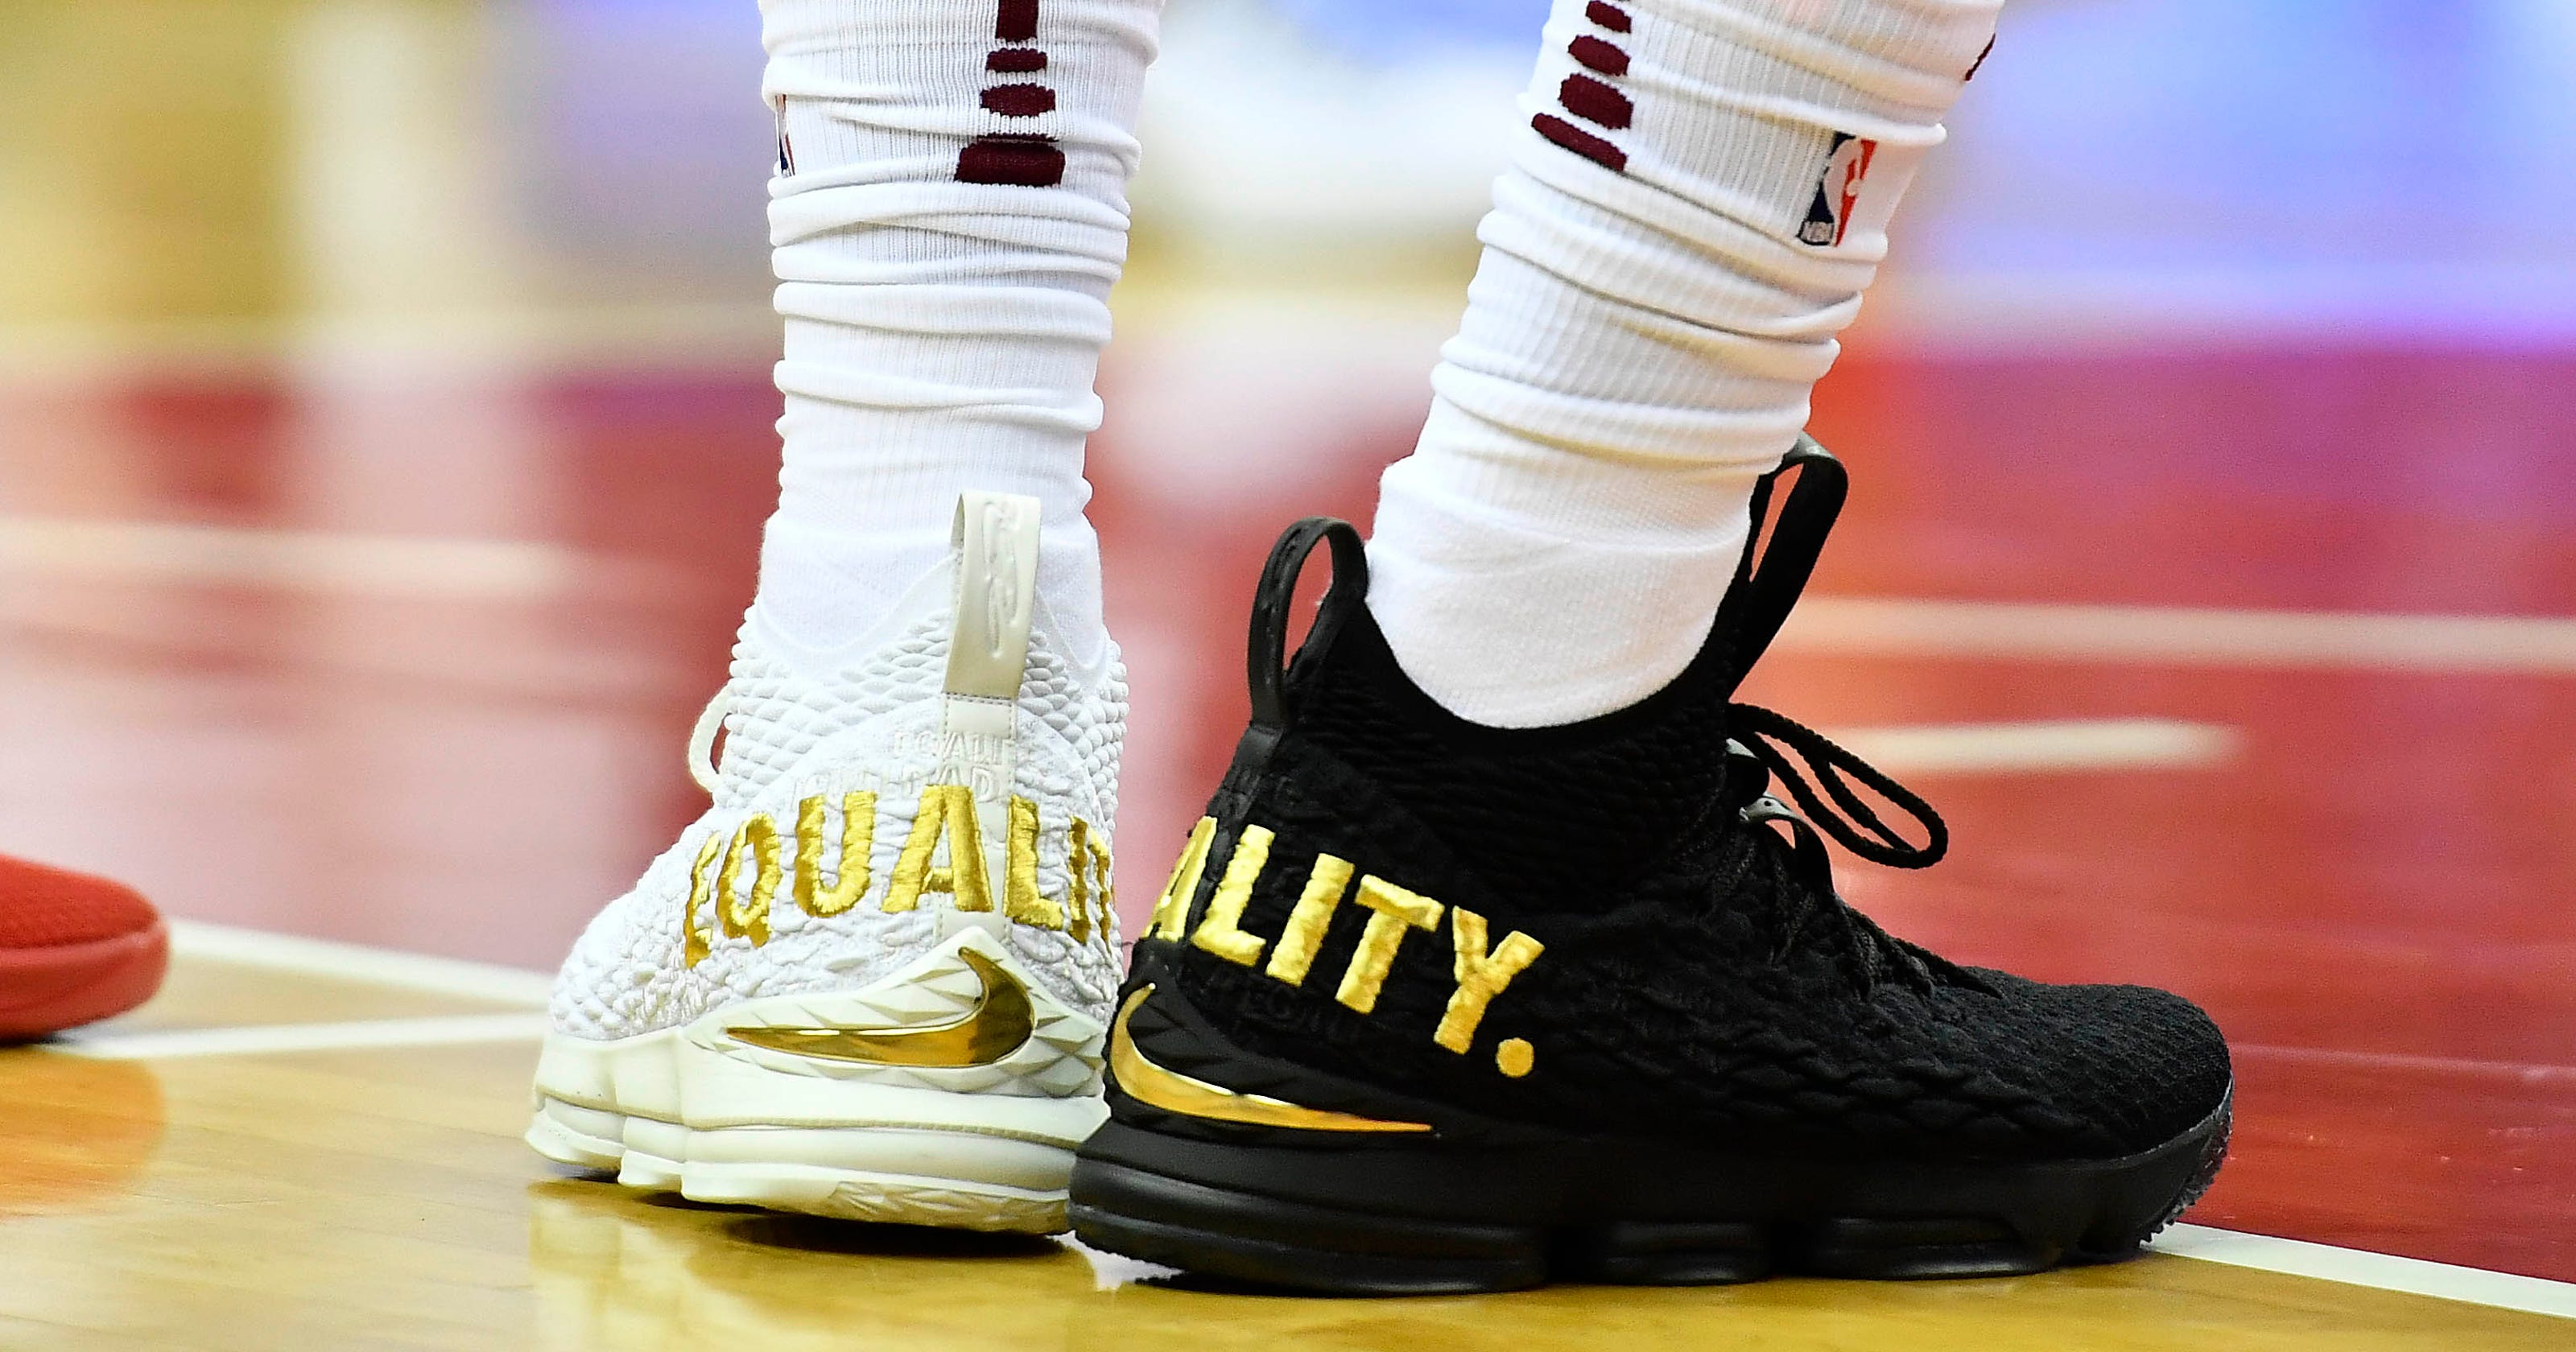 on sale e1b83 5ba0c LeBron James makes statement with  Equality  sneakers worn in D.C.